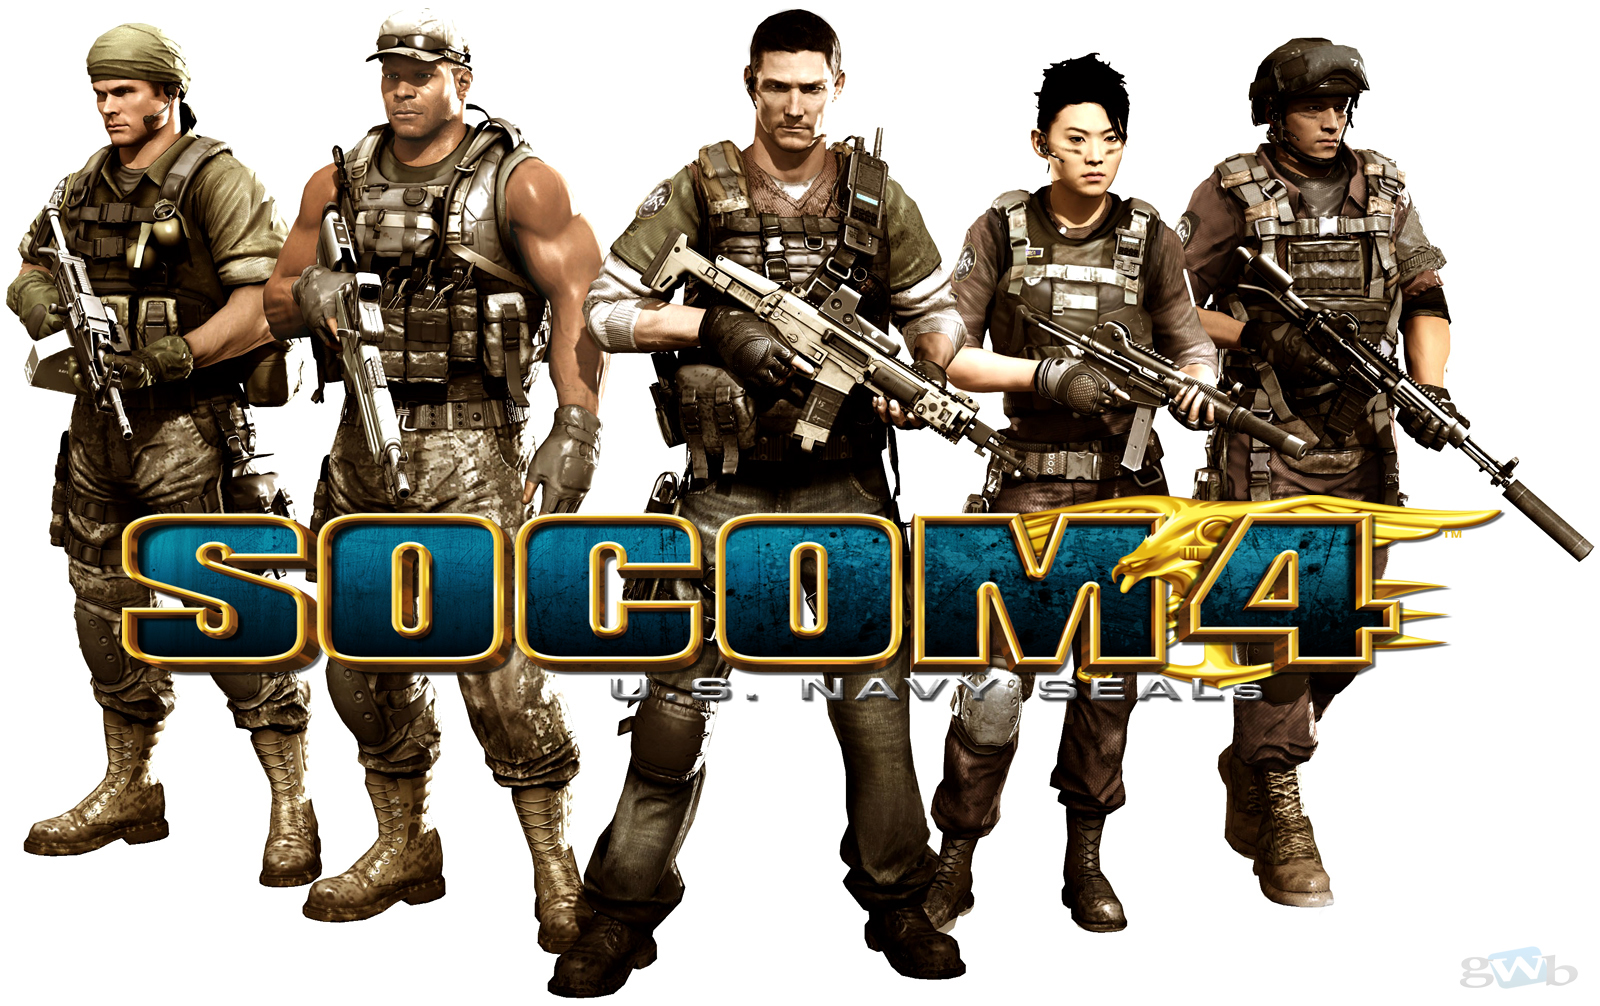 Socom 4 characters us navy seals hd wallpaper wallpapers socom 4 characters us navy seals hd wallpaper thecheapjerseys Choice Image